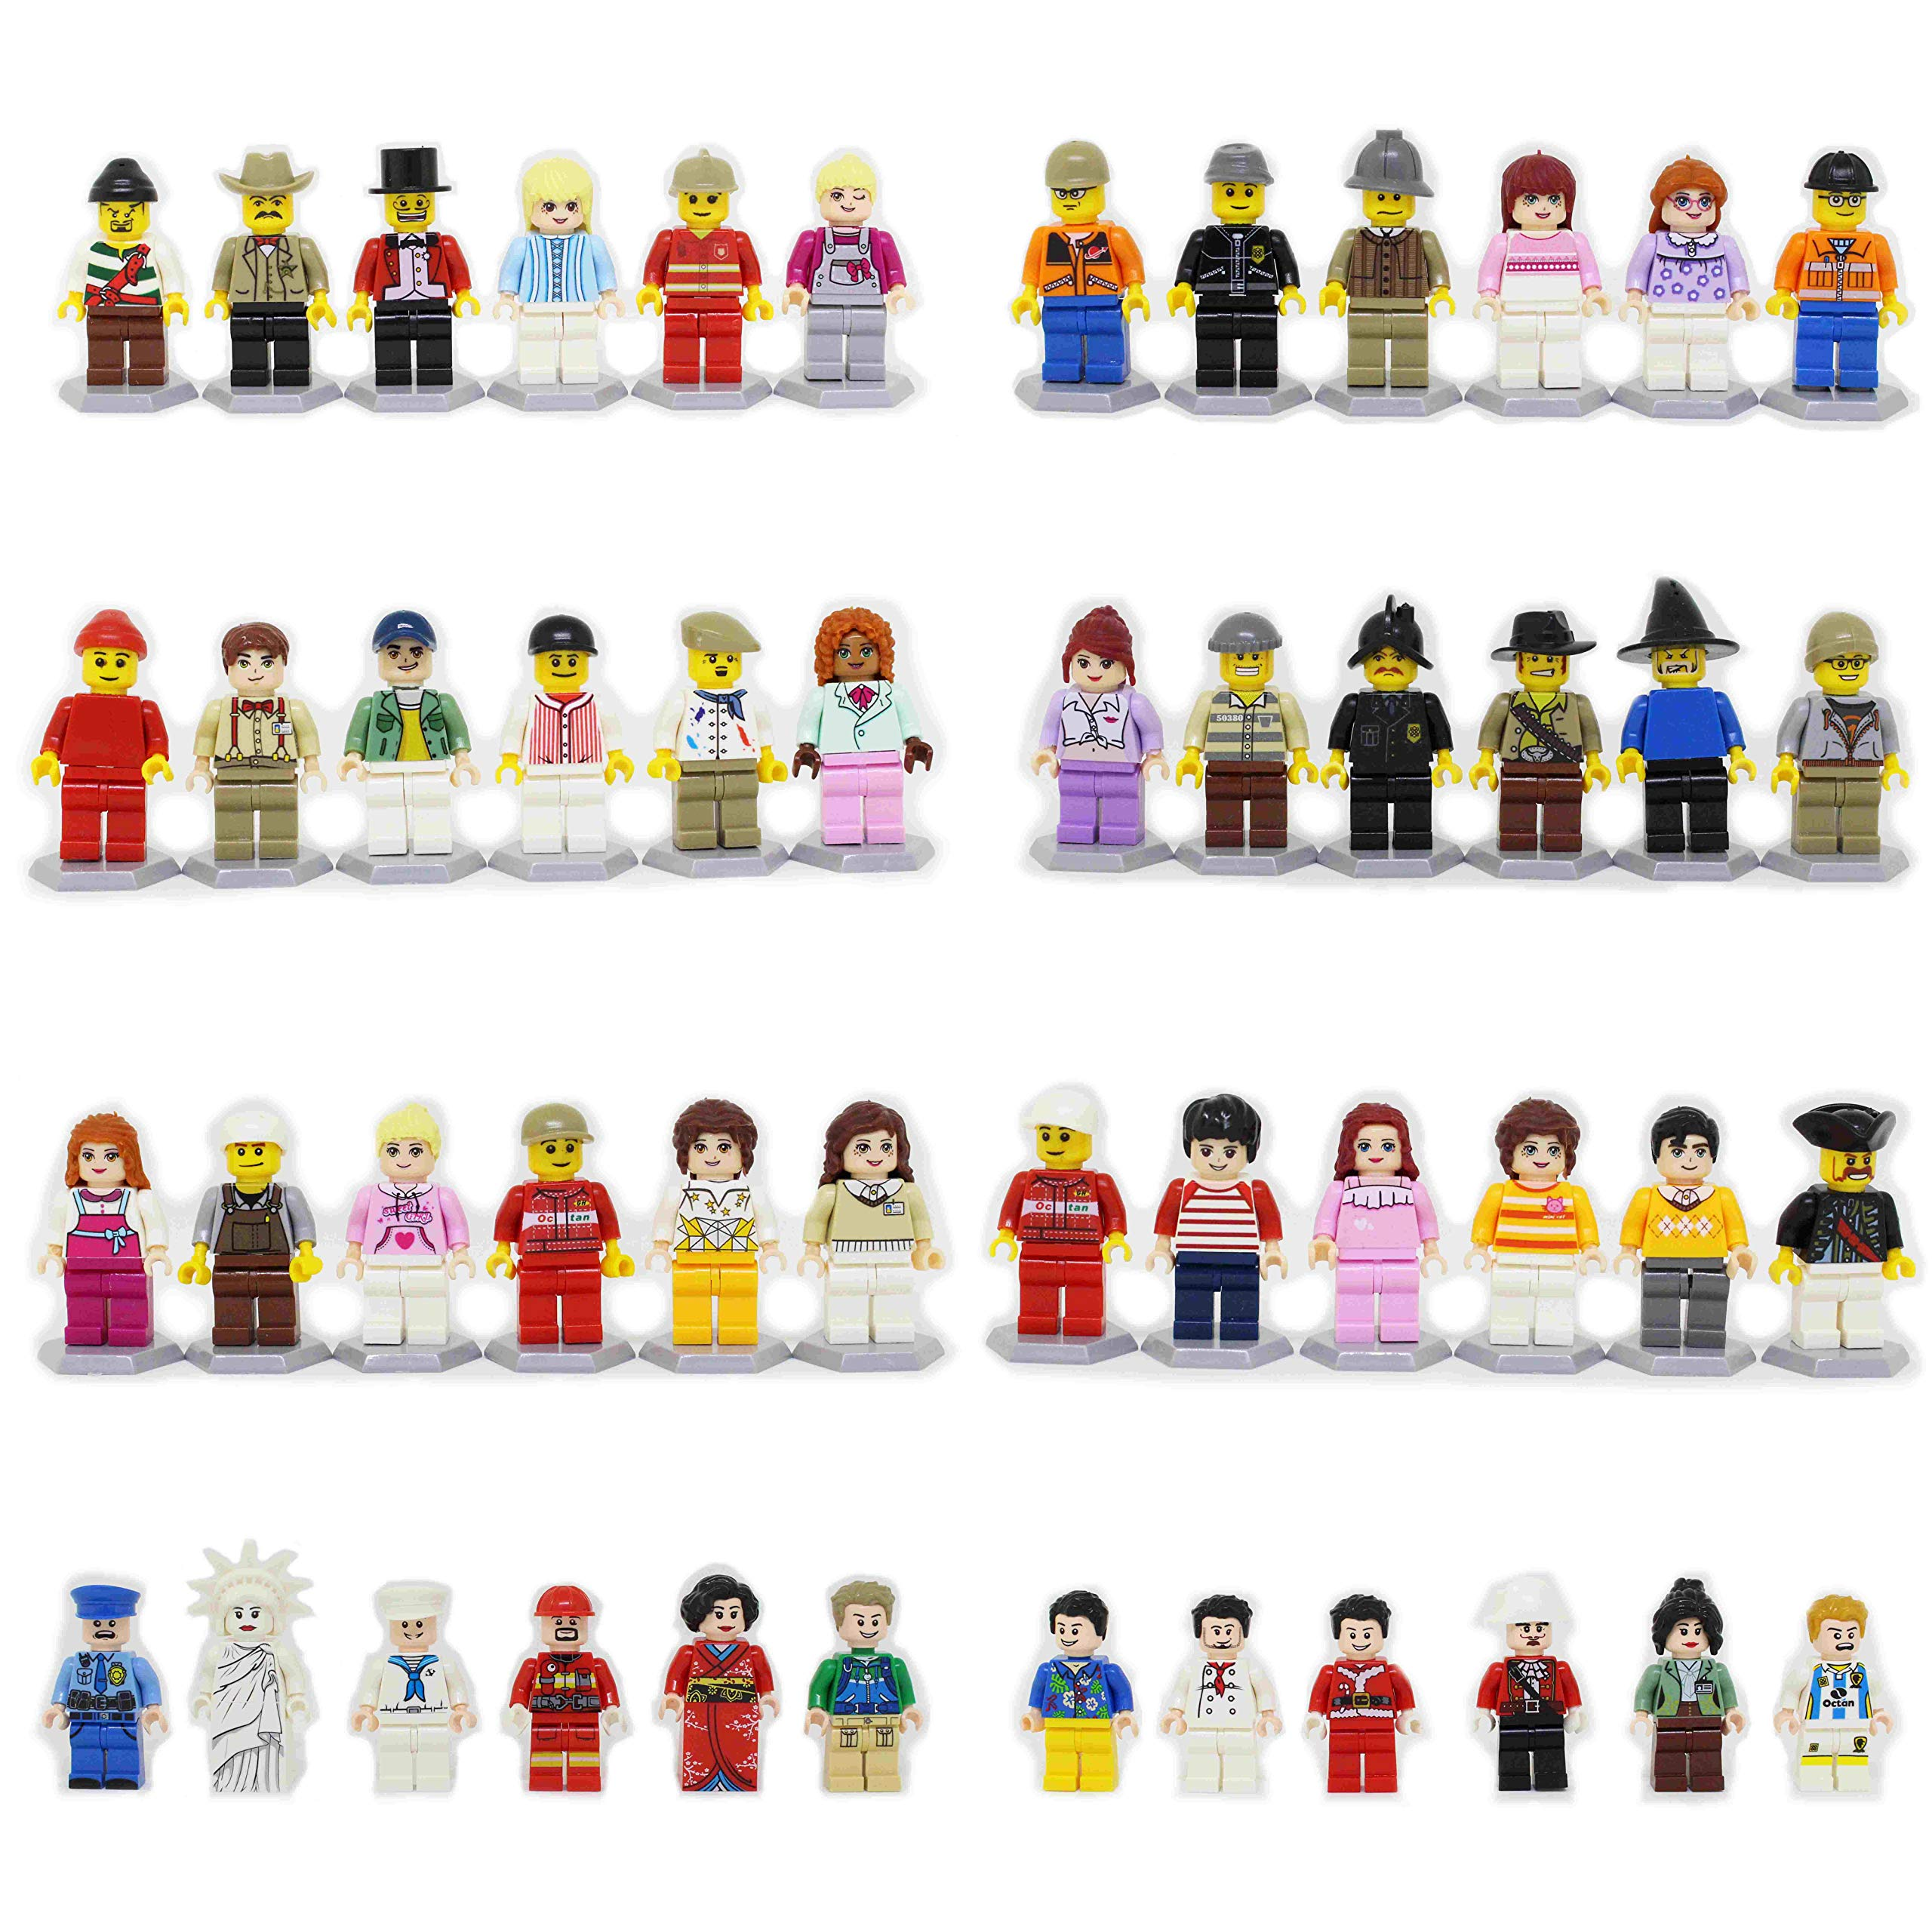 Homecoming Kids 48 Minifigures Building Bricks Community People Accessories, Building Party Toys Gift